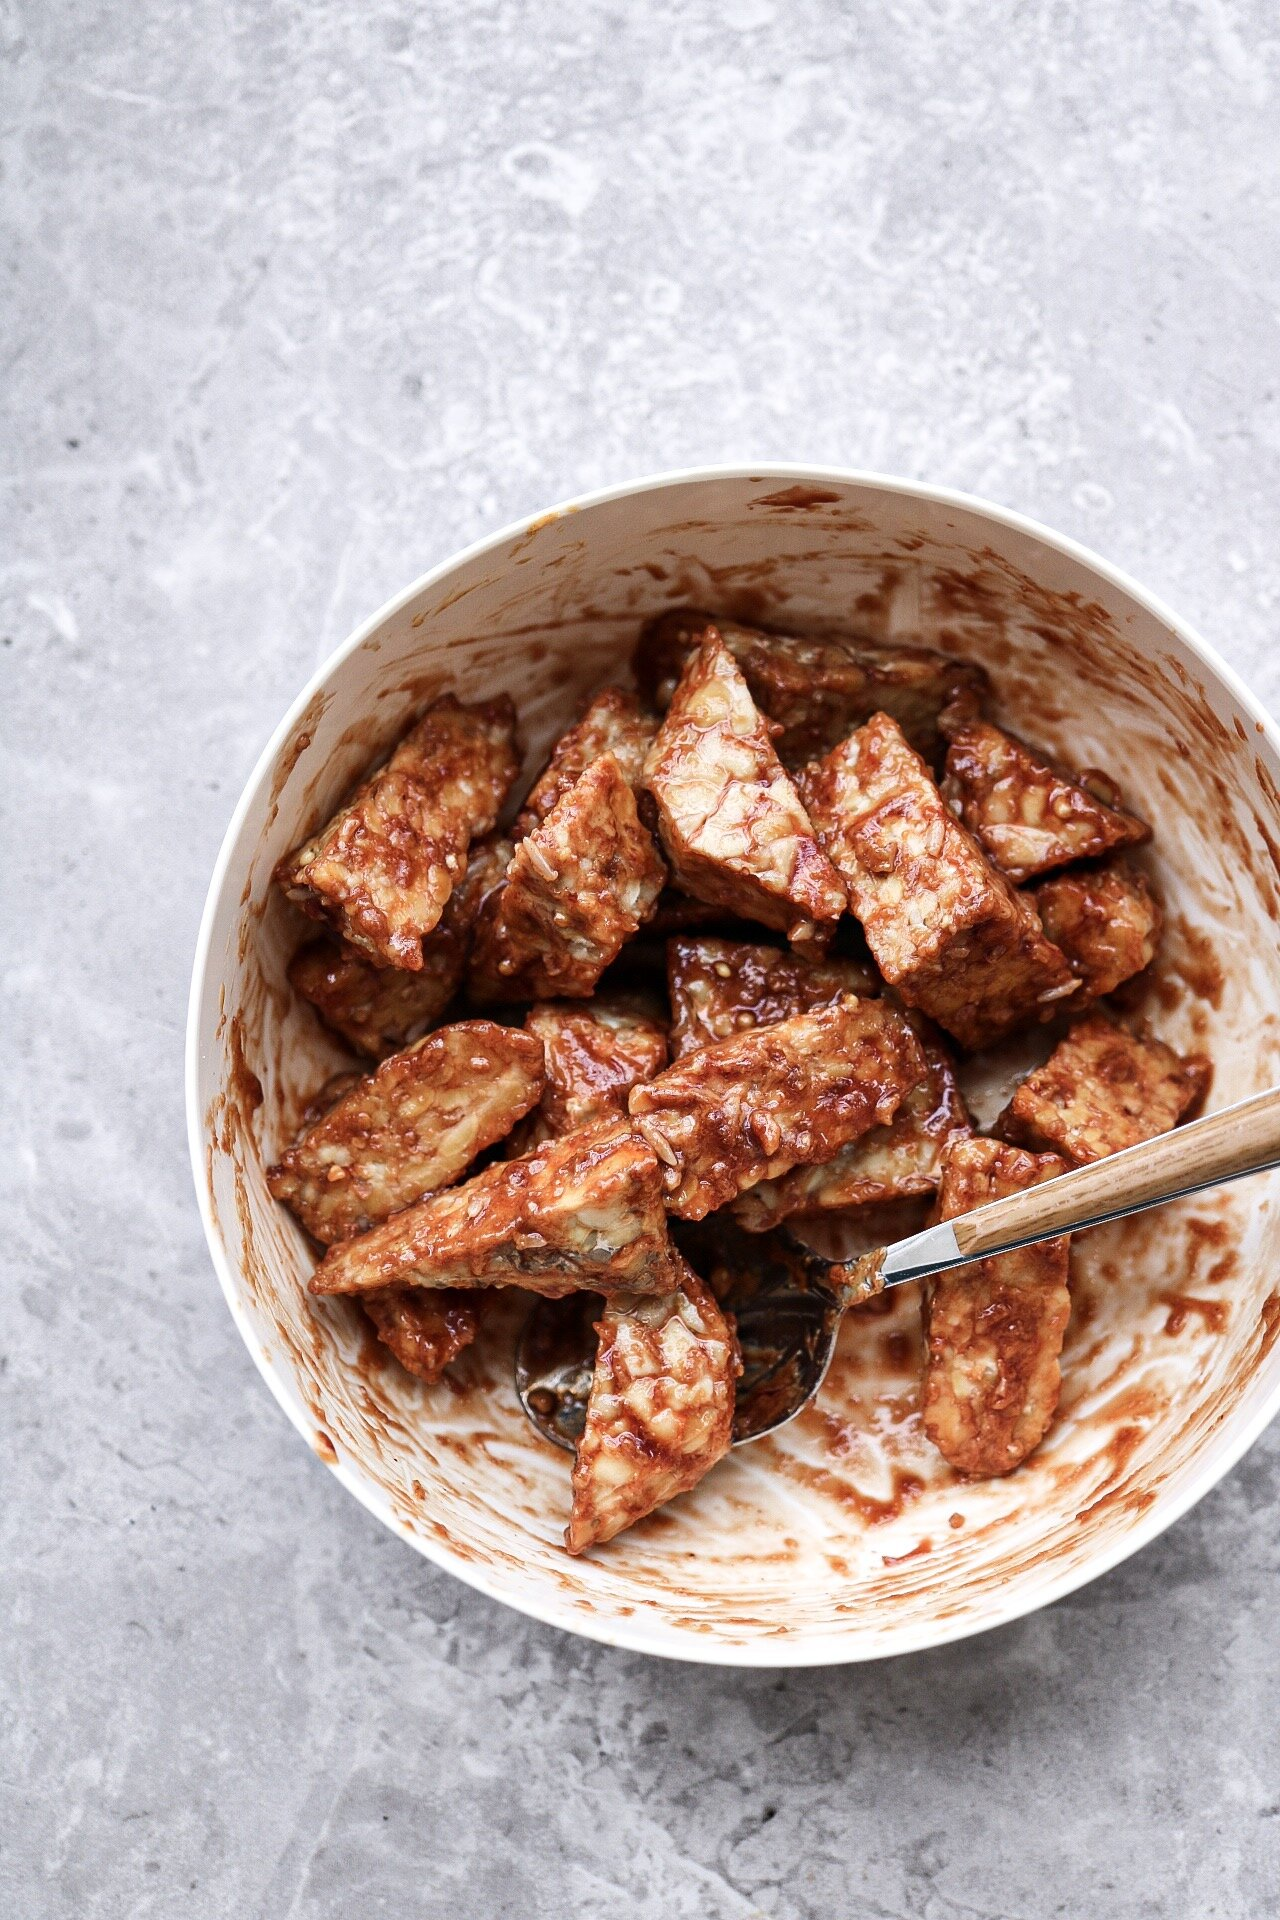 Mix your tempeh around in the sauce - then add to the baking sheet!